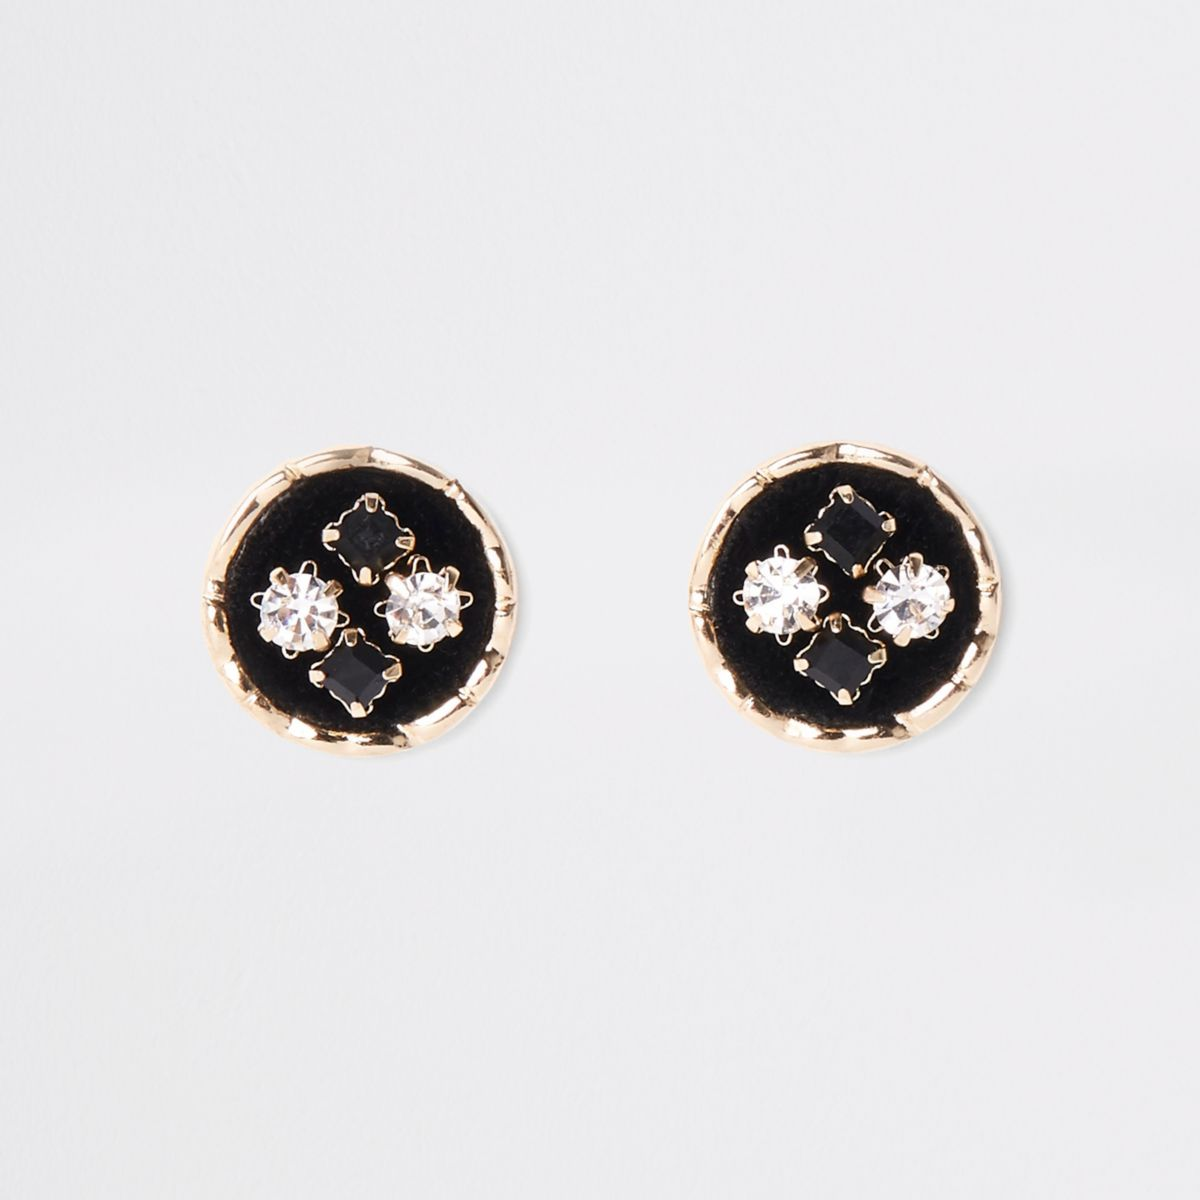 Black velvet embellished circle stud earrings